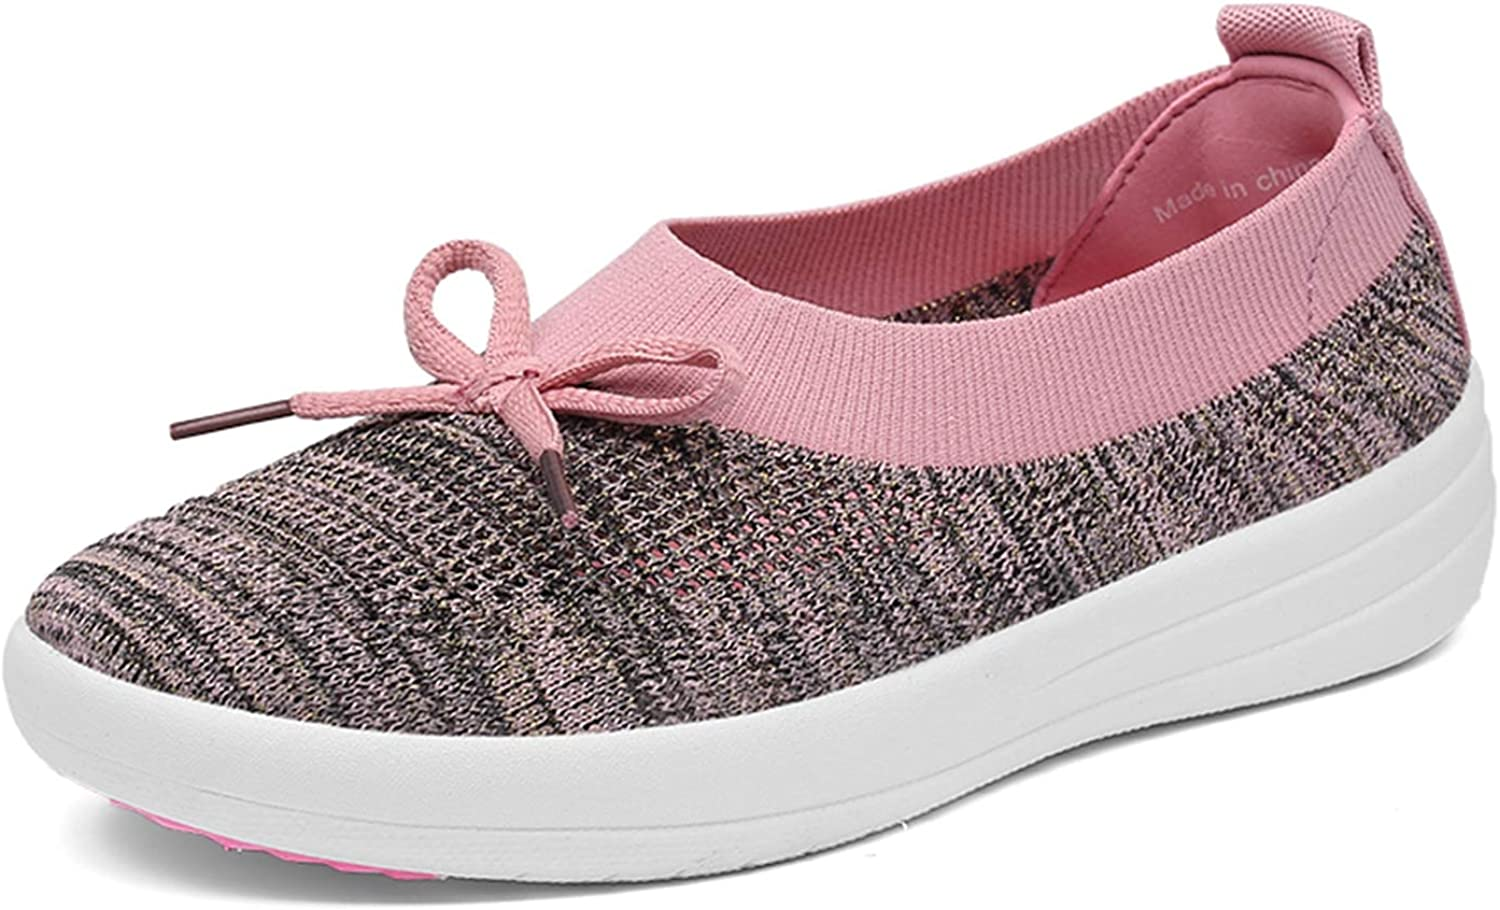 Zomine Women's Casual Fly Woven Driving Loafers Slip On Bowknot Moccasins Flat shoes